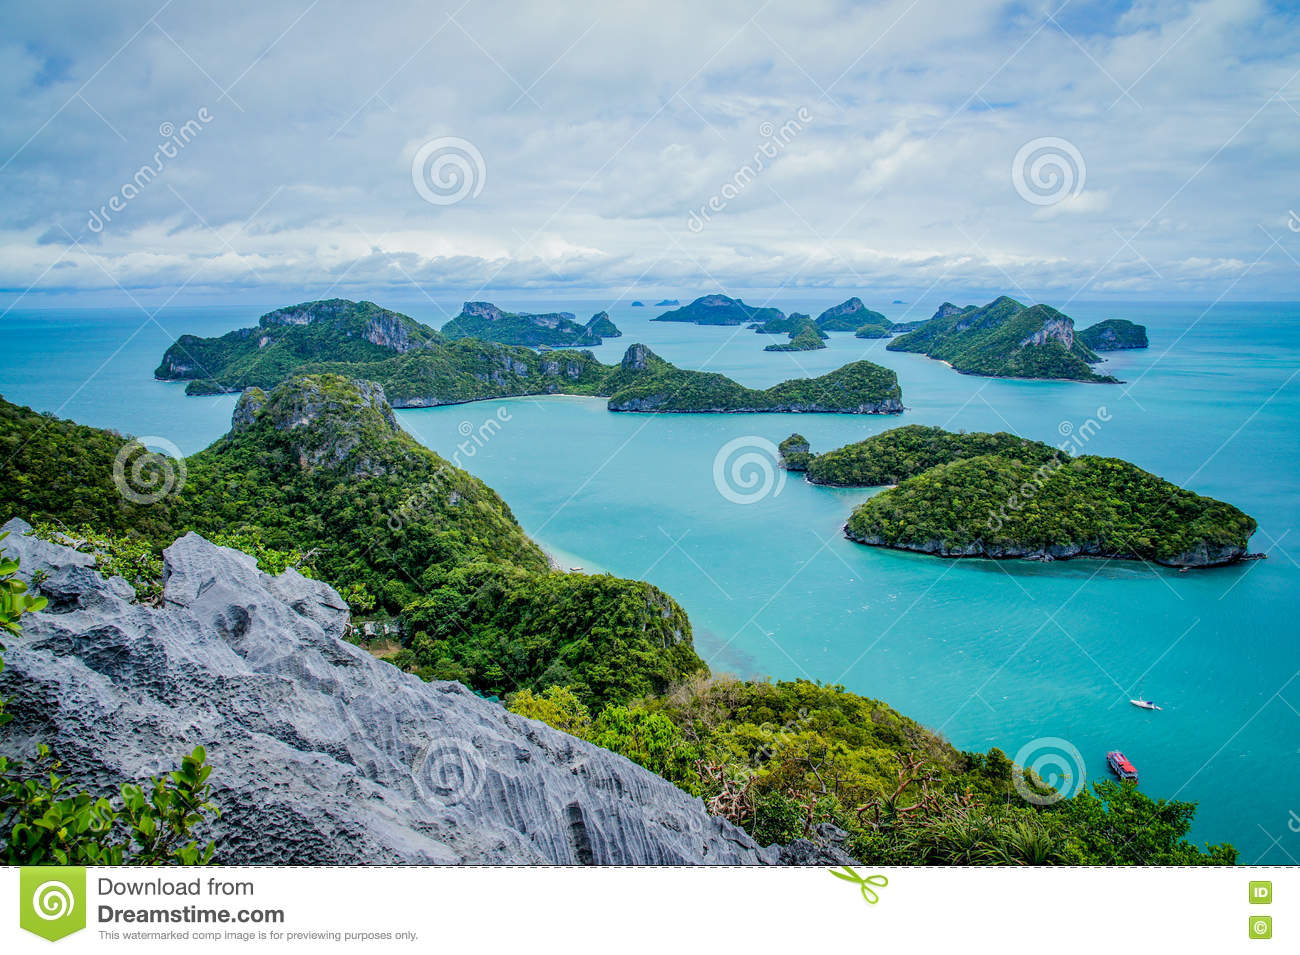 Download View Of Islands And Cloudy Sky From Viewpoint Of Mu Ko Ang Thong National Marine Park Near Ko Samui In Gulf Of Thailand Stock Image - Image of marine, province: 80558283